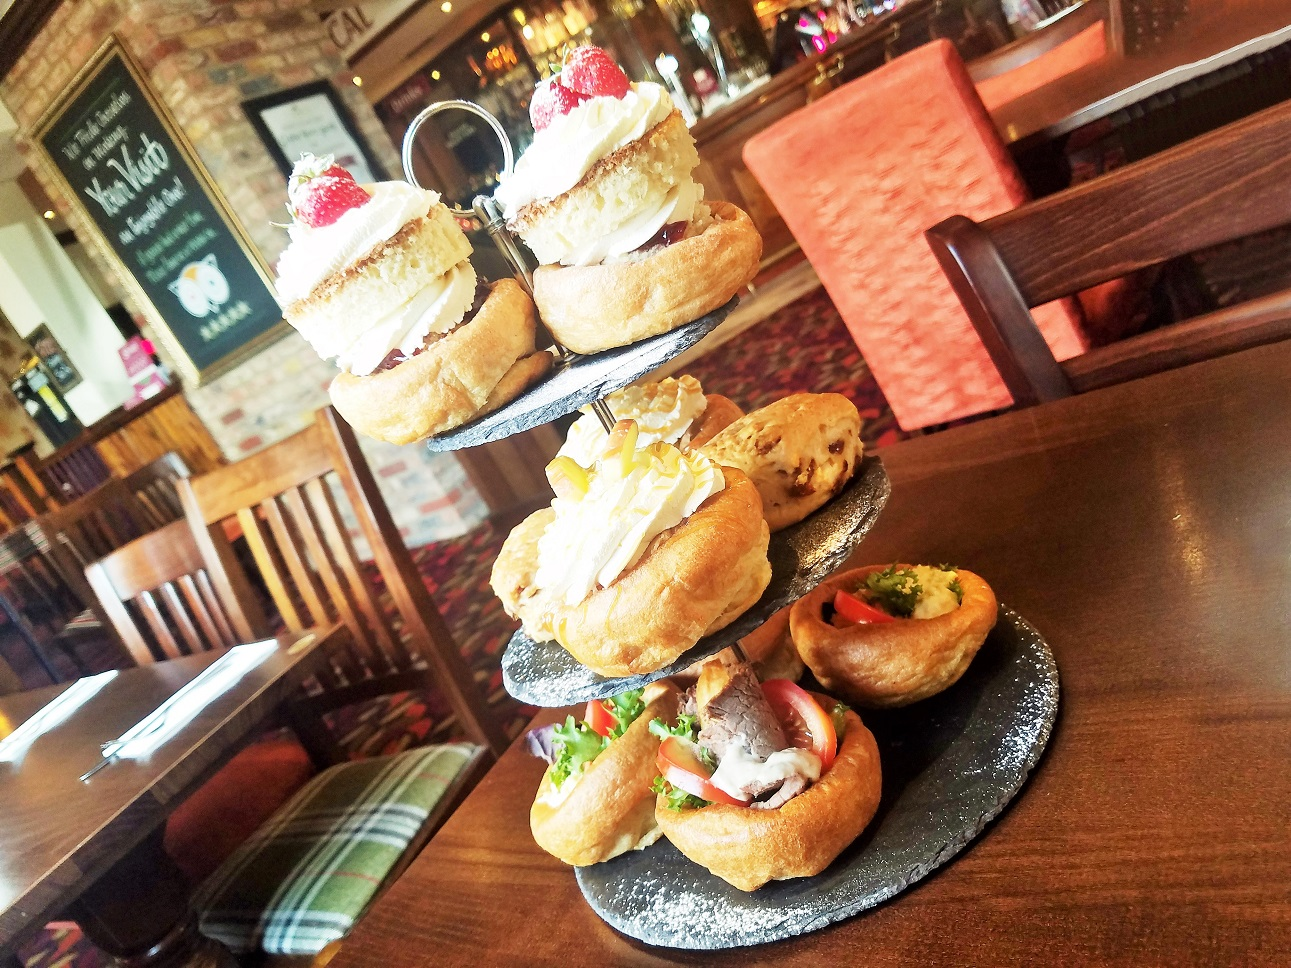 Yorkshire Afternoon Tea - three tier stand of afternoon tea delights in Yorkshire Puddings - Barnsley - BlogCrush Week 78